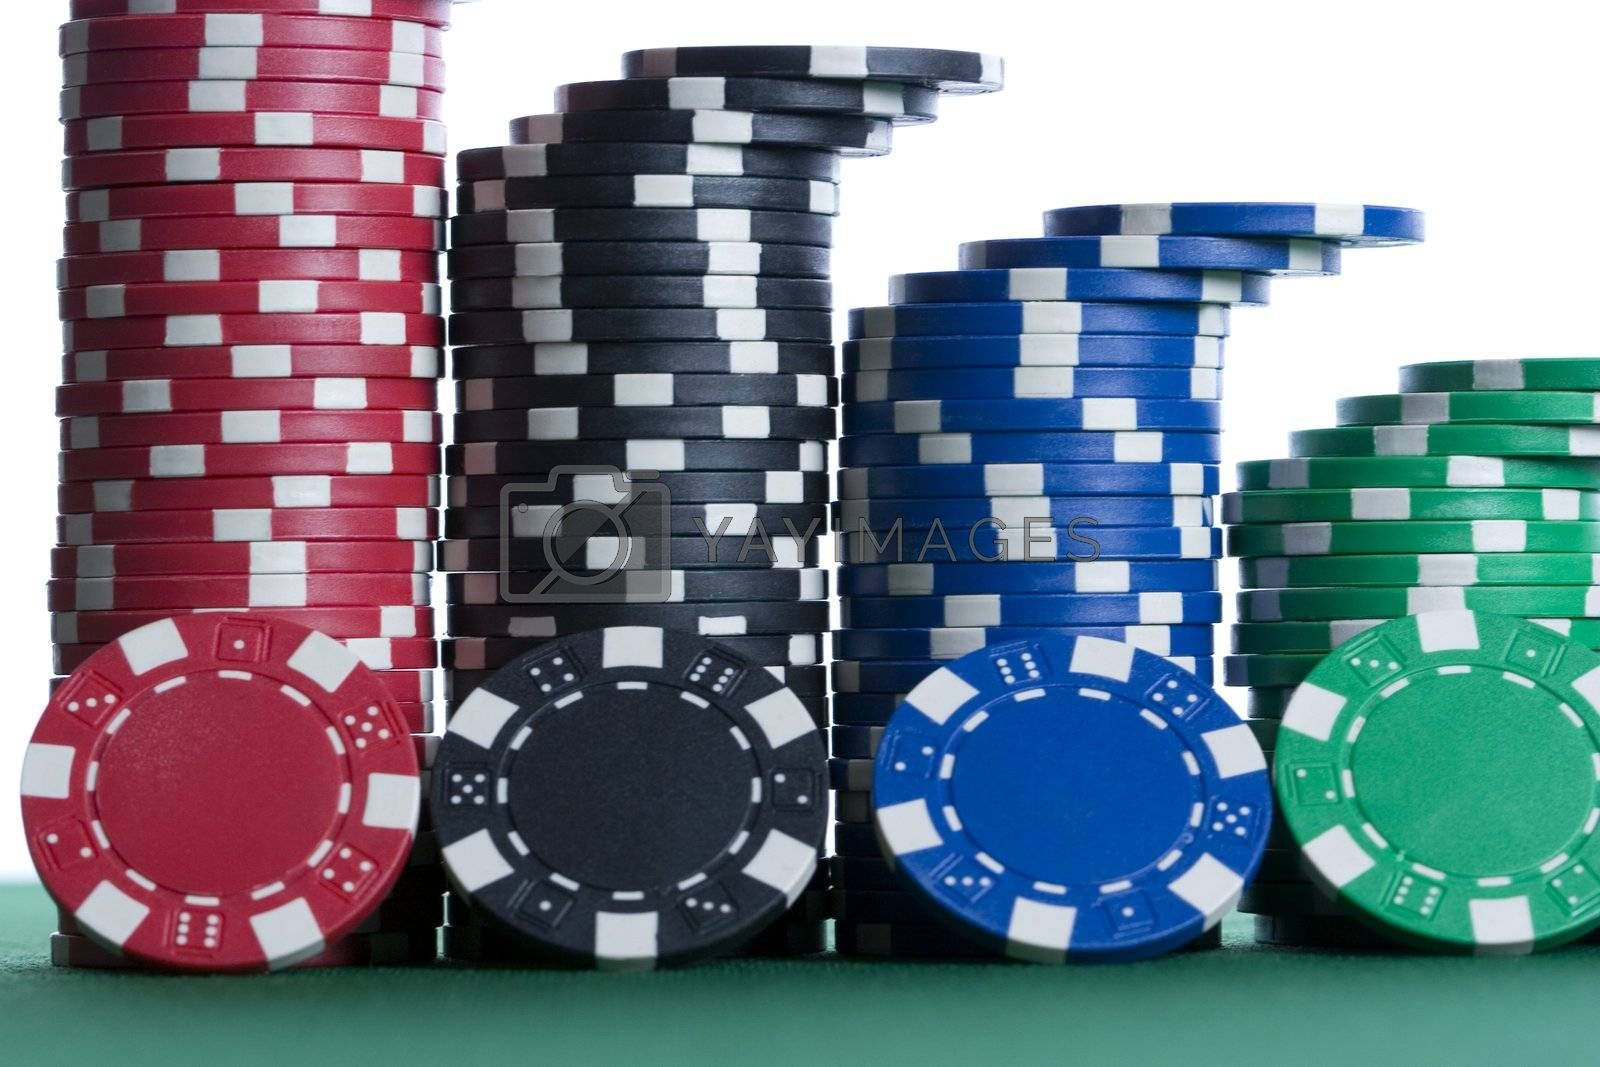 Woks Bars Stacked With Colored Poker Chips Royalty Free Stock Image Stock Photos Royalty Free Images Vectors Footage Yayimages